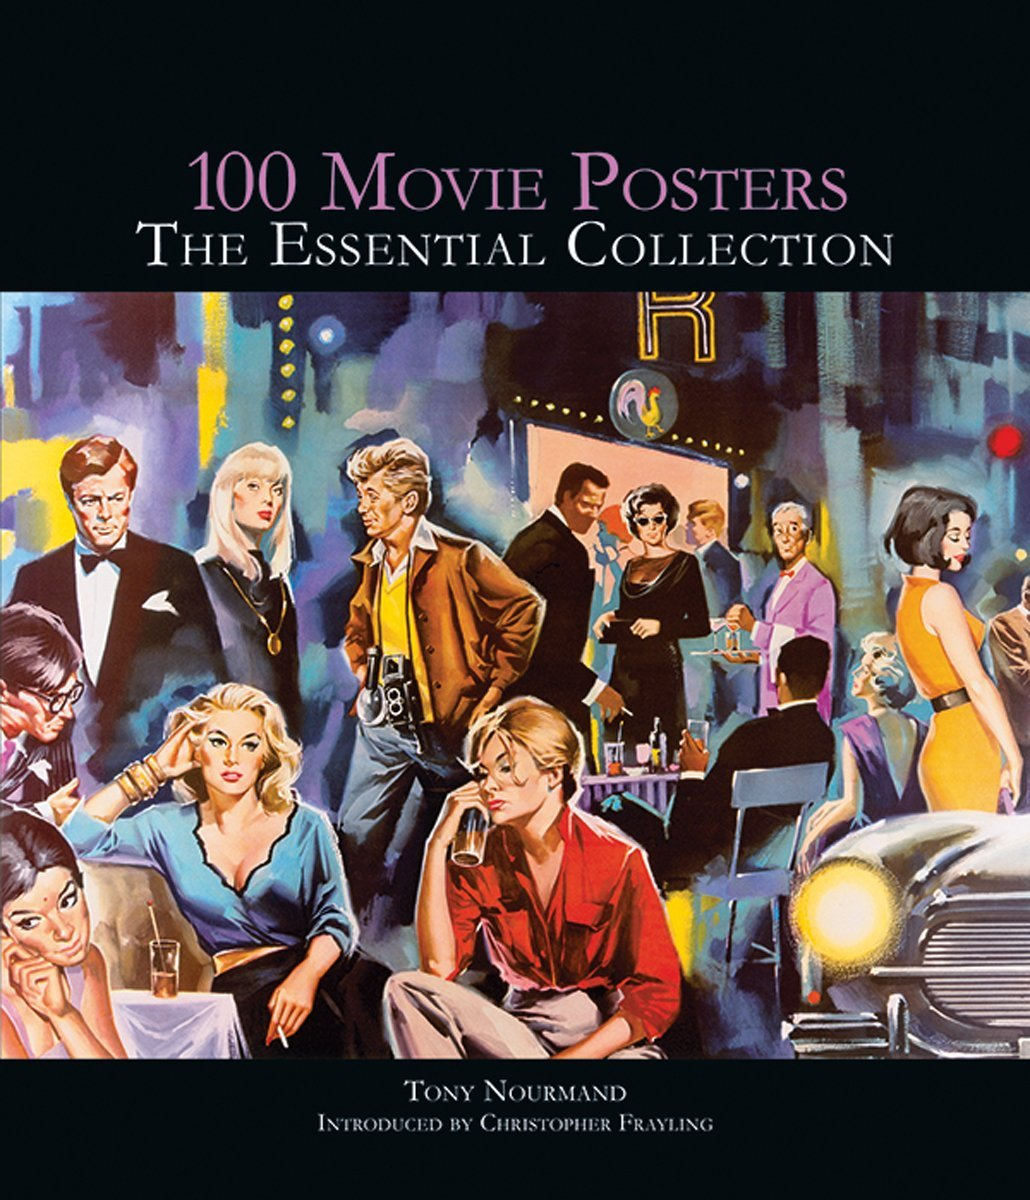 100 Movie Posters: The Essential Collection: Tony Nourmand, Christopher  Frayling: 9780957261082: Amazon.com: Books